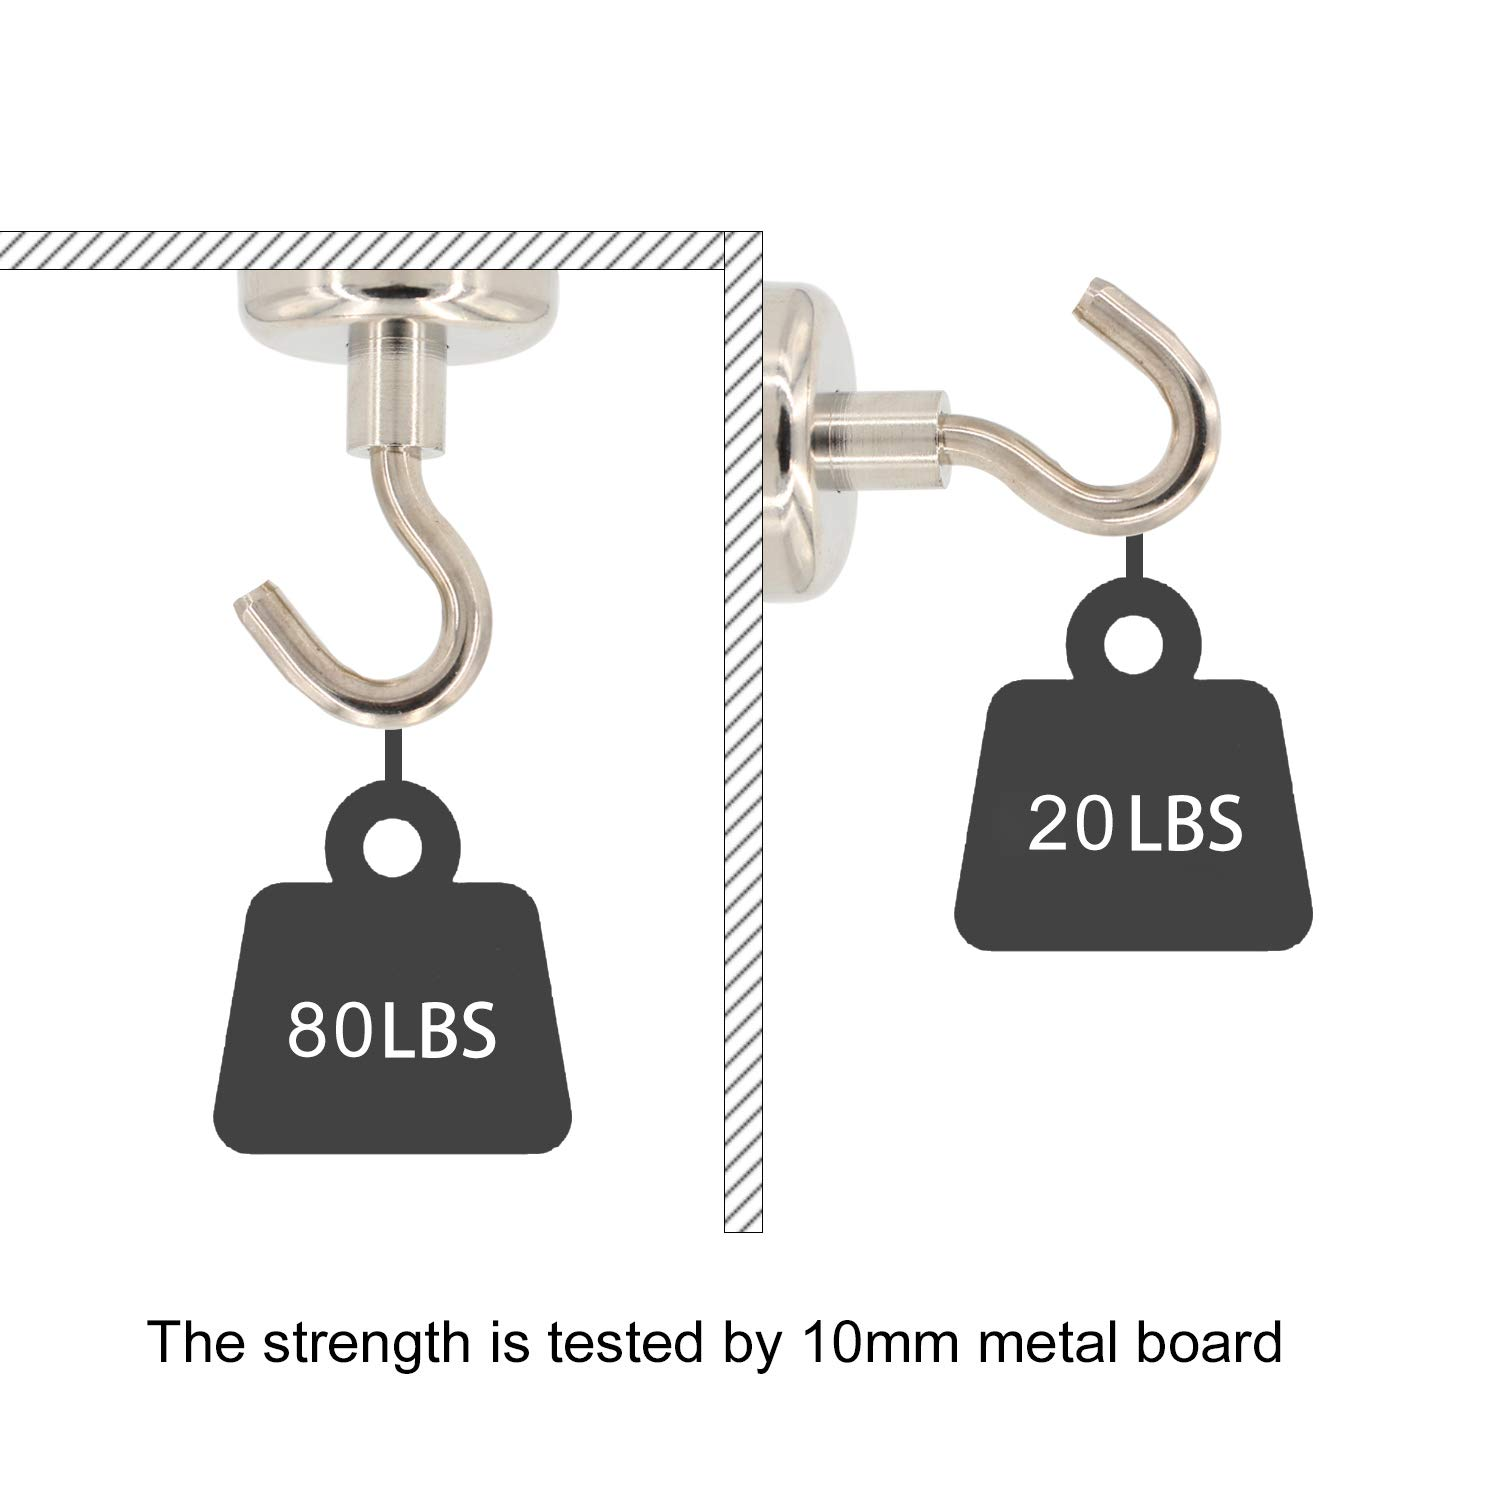 Refrigerators Home Keys 18LBS Super Magnets with Neodymium Rare Earth for Hanging Office Pack of 10 Door Holder MHDMAG Magnetic Hooks Refrigerator,Cruise Ship Accessories BBQ